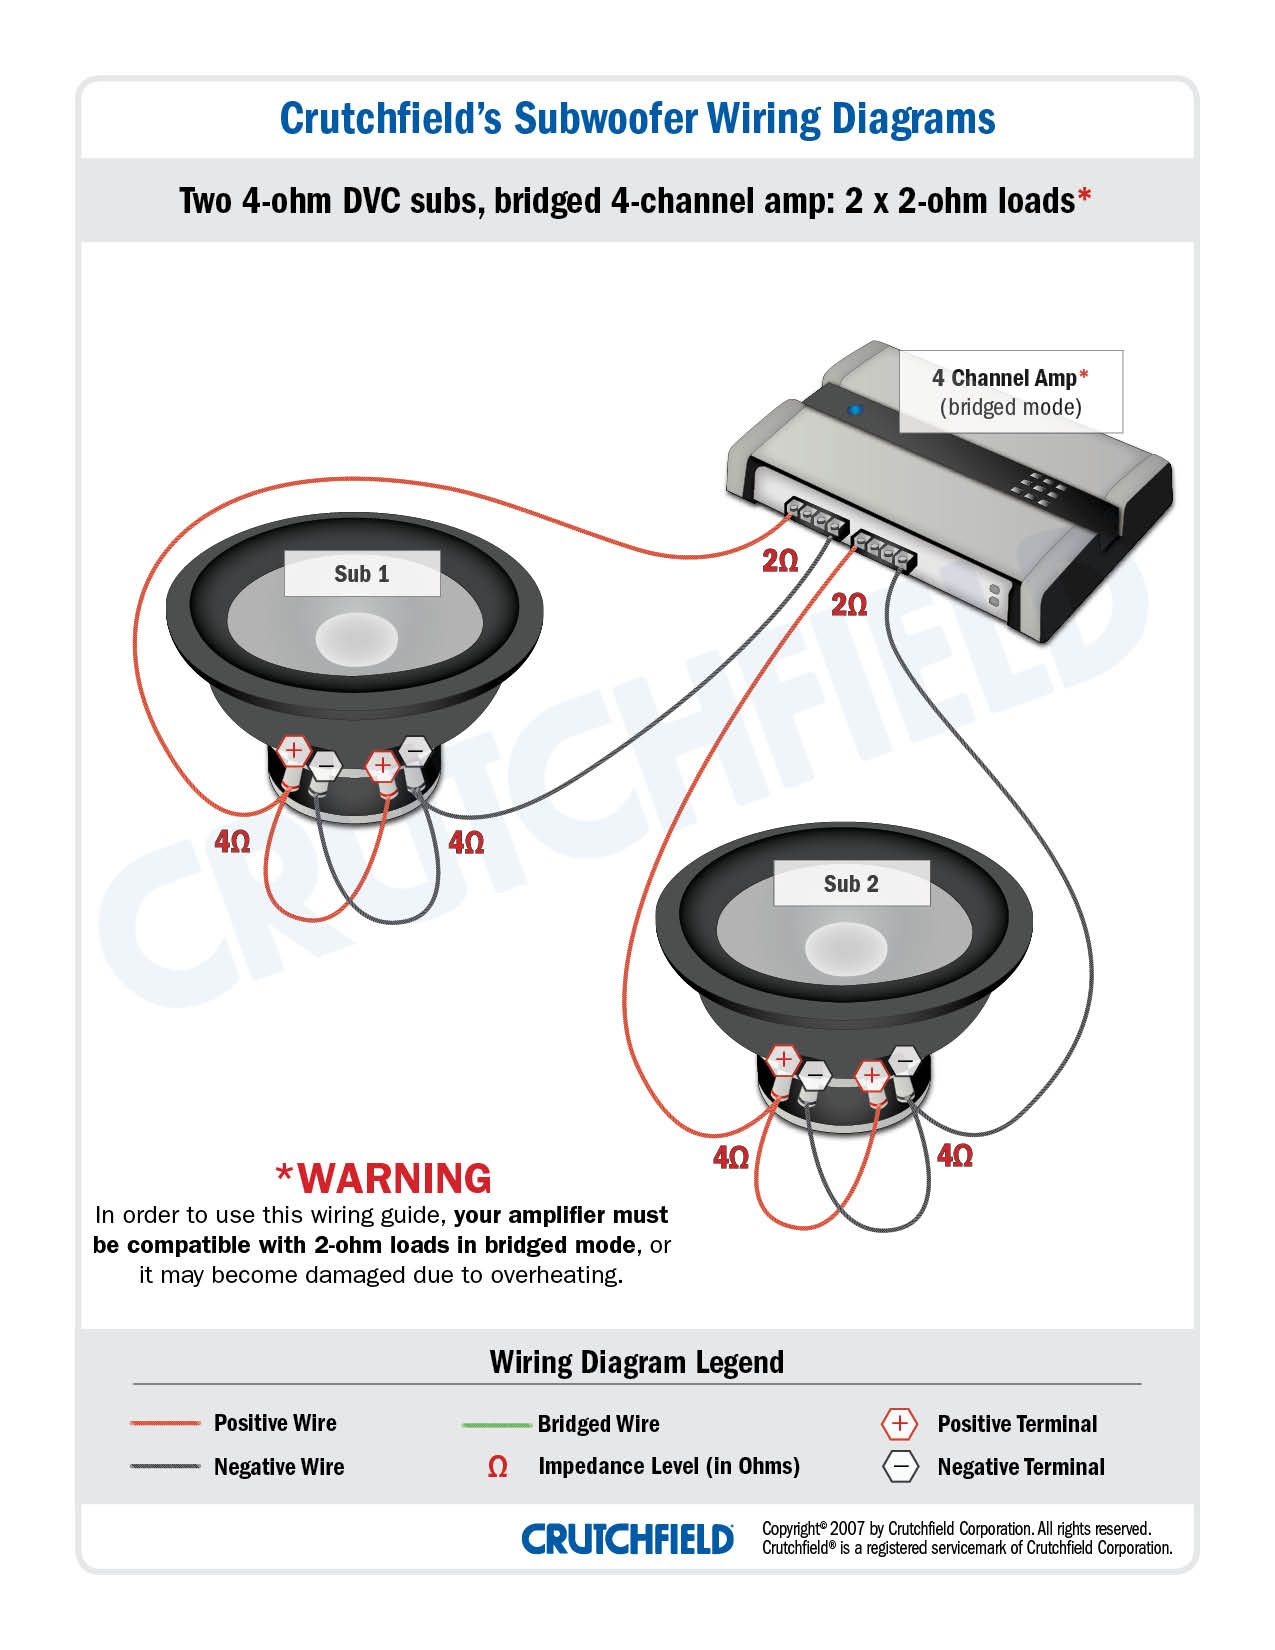 wiring diagrams subwoofer – the wiring diagram, Wiring diagram